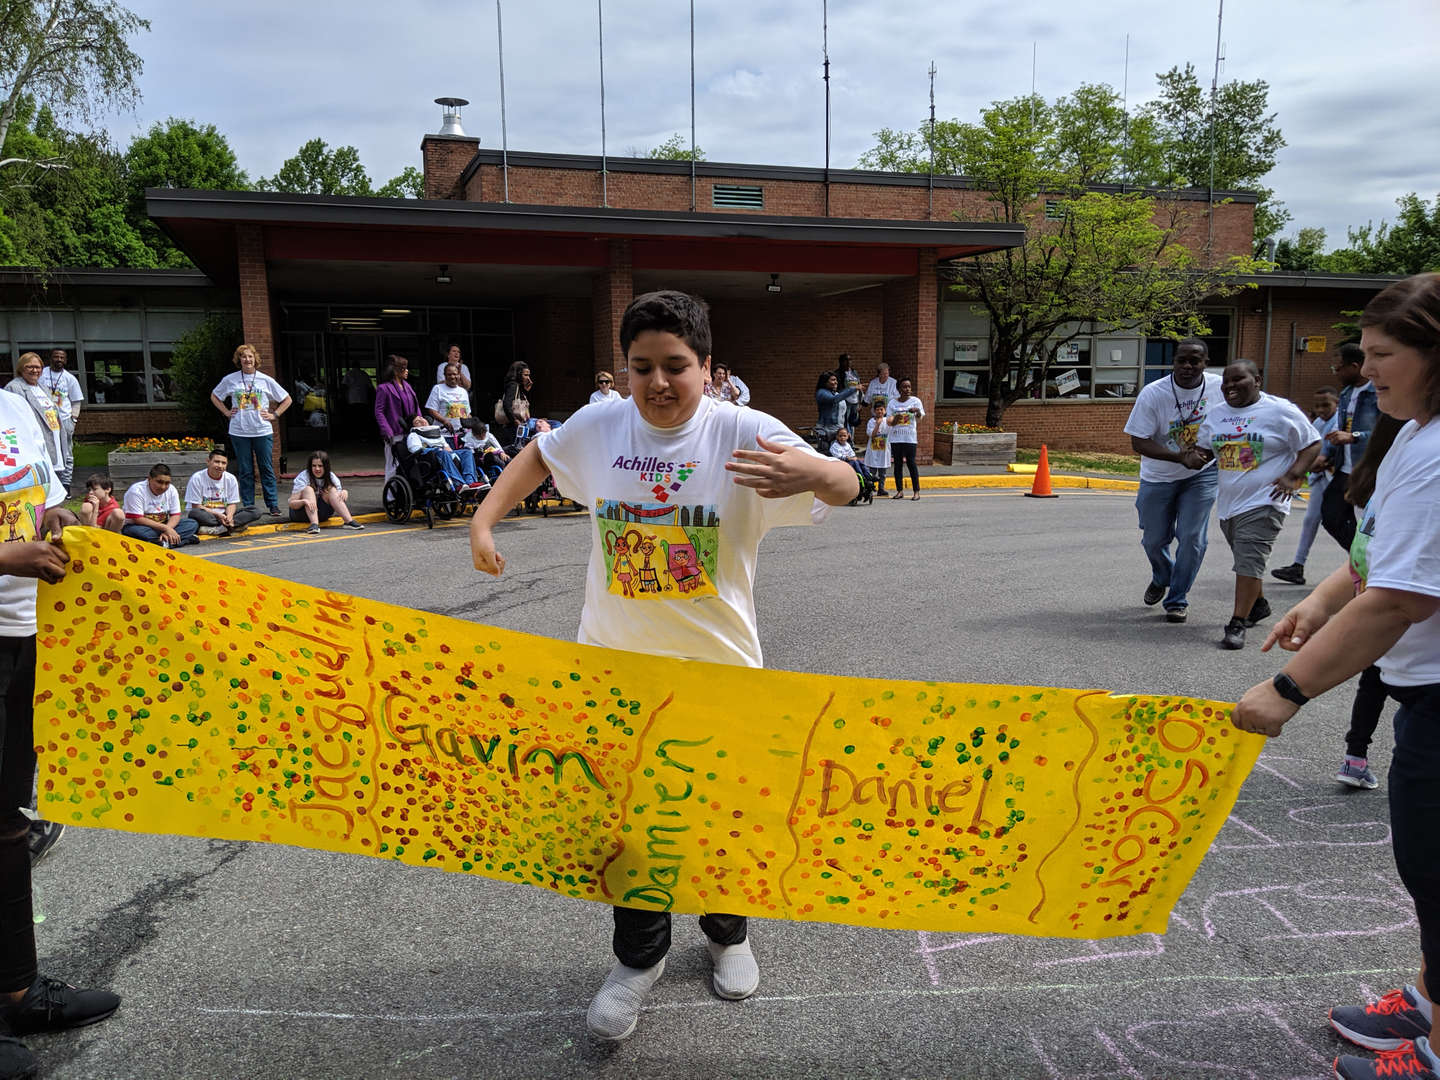 A student is about to break through the banner at the finish line.